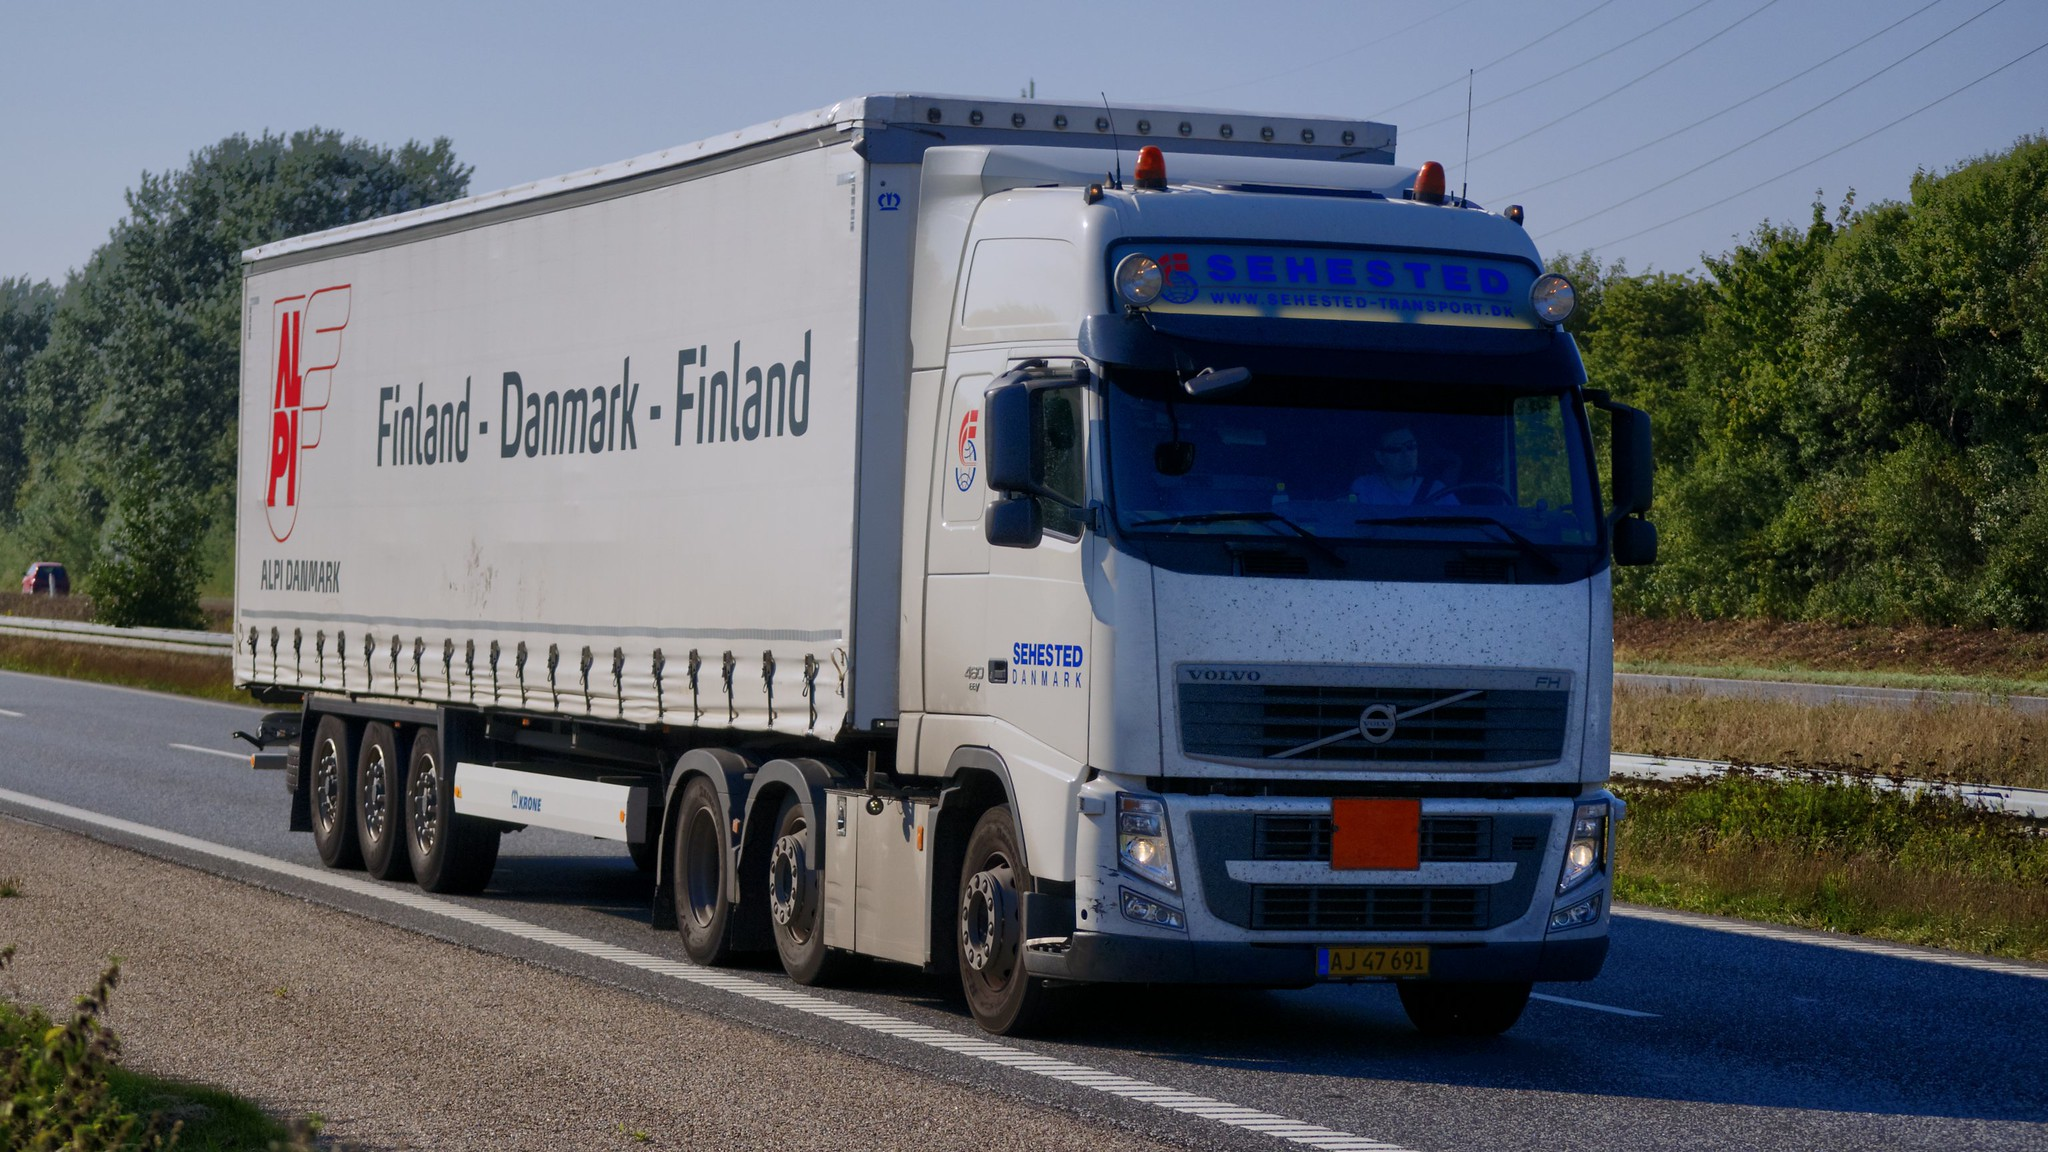 Finland's logistics association says rule-abiding carriers are being disadvantaged